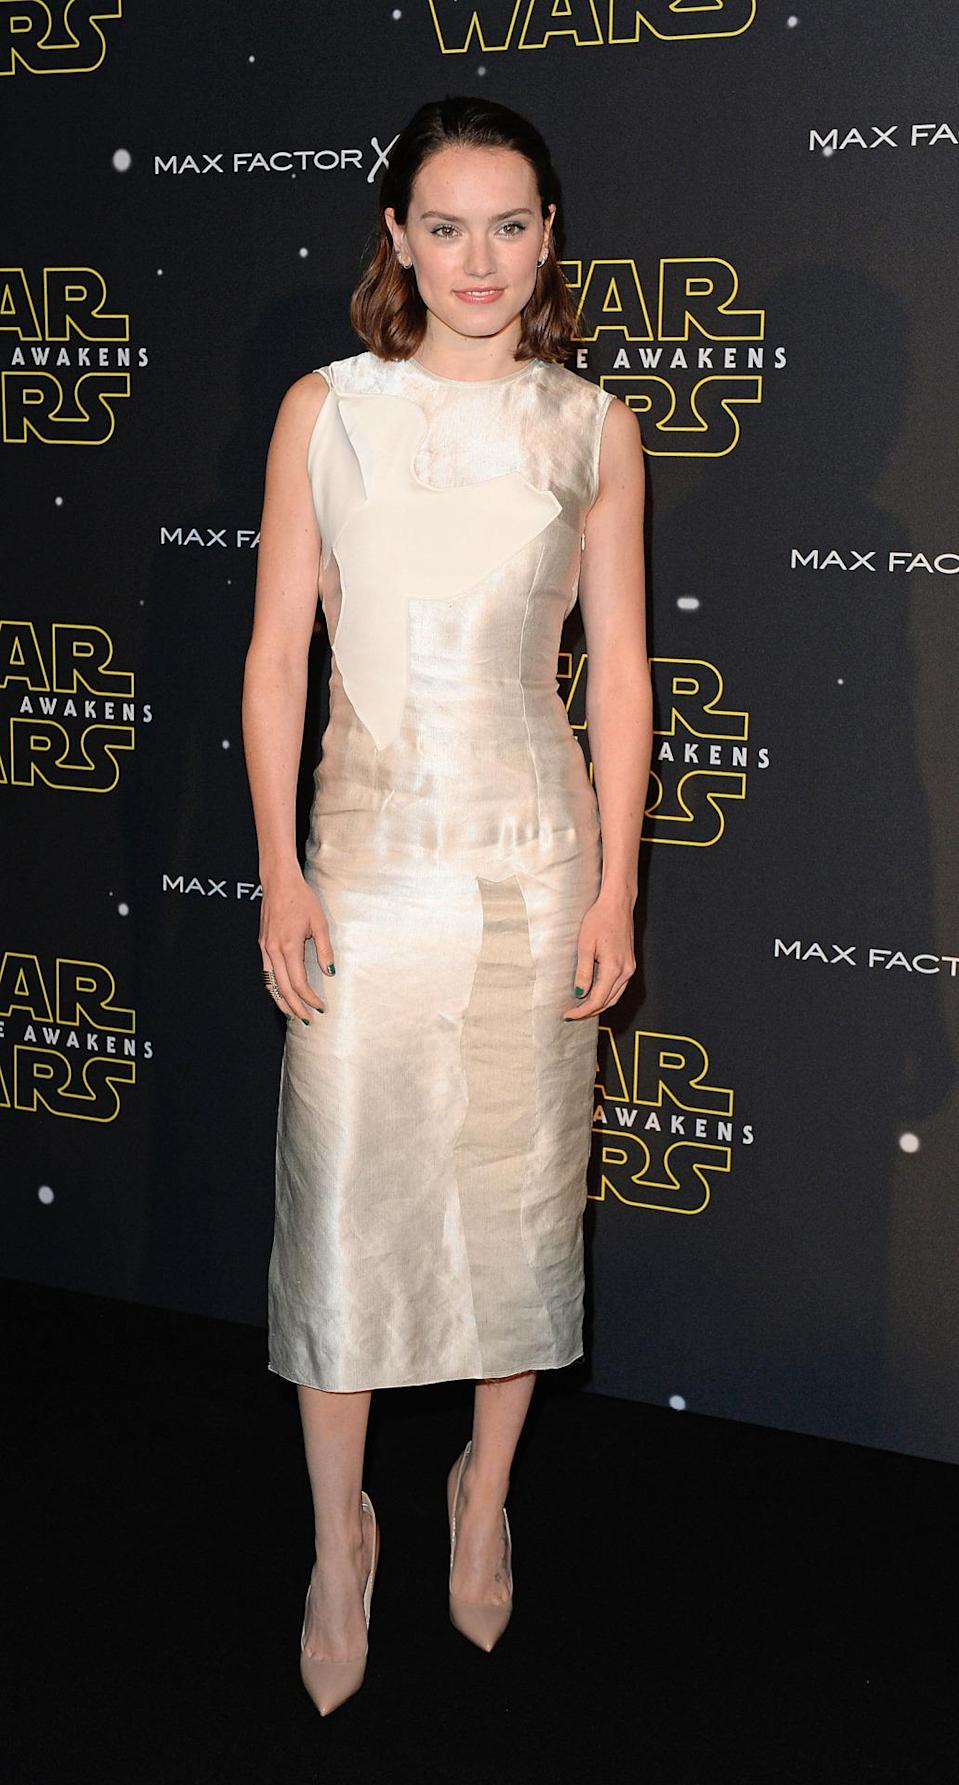 <p>For her first big international tour, Ridley scored a major celebrity stylist: Petra Flannery. Flannery dresses all of your style icons, from Emma Stone and Carey Mulligan to Zoe Saldana and Claire Danes, meaning Ridley's already in the very best fashion hands.</p><p><i>(Photo: Getty Images)</i></p>